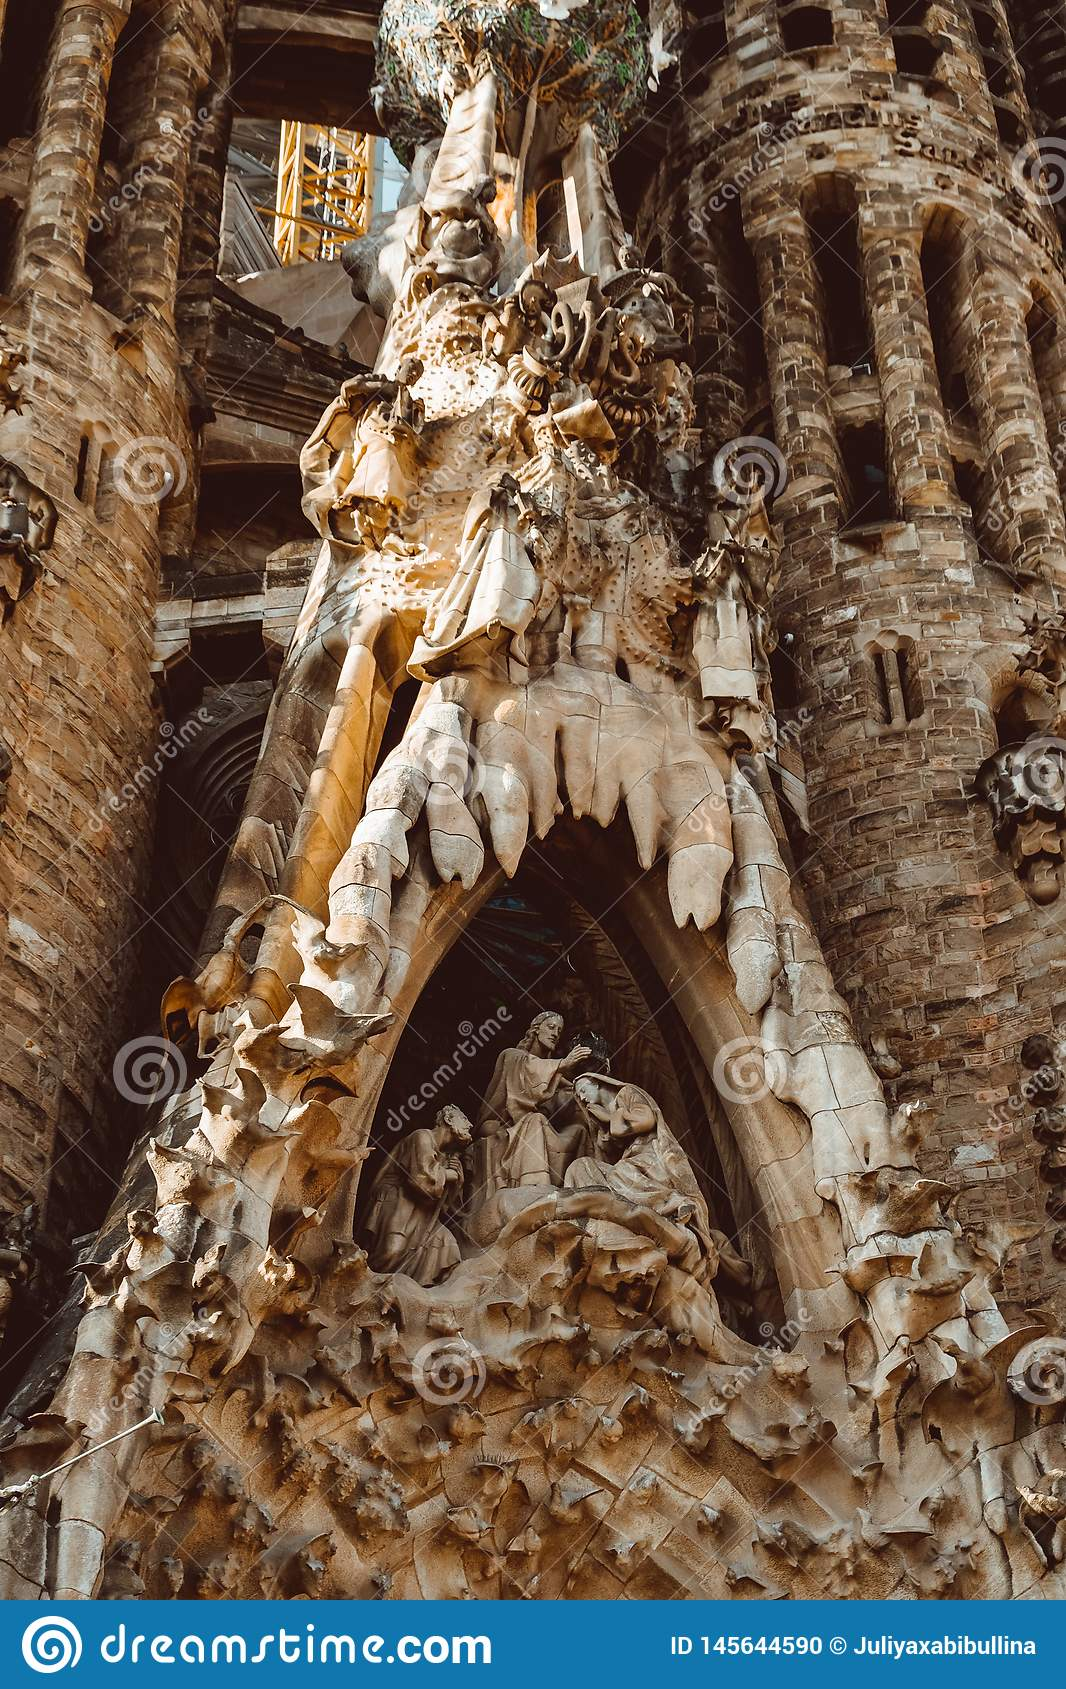 BARCELONA - AUGUST 9: The Nativity Facade of the Sagrada Familia, the most iconic landmark